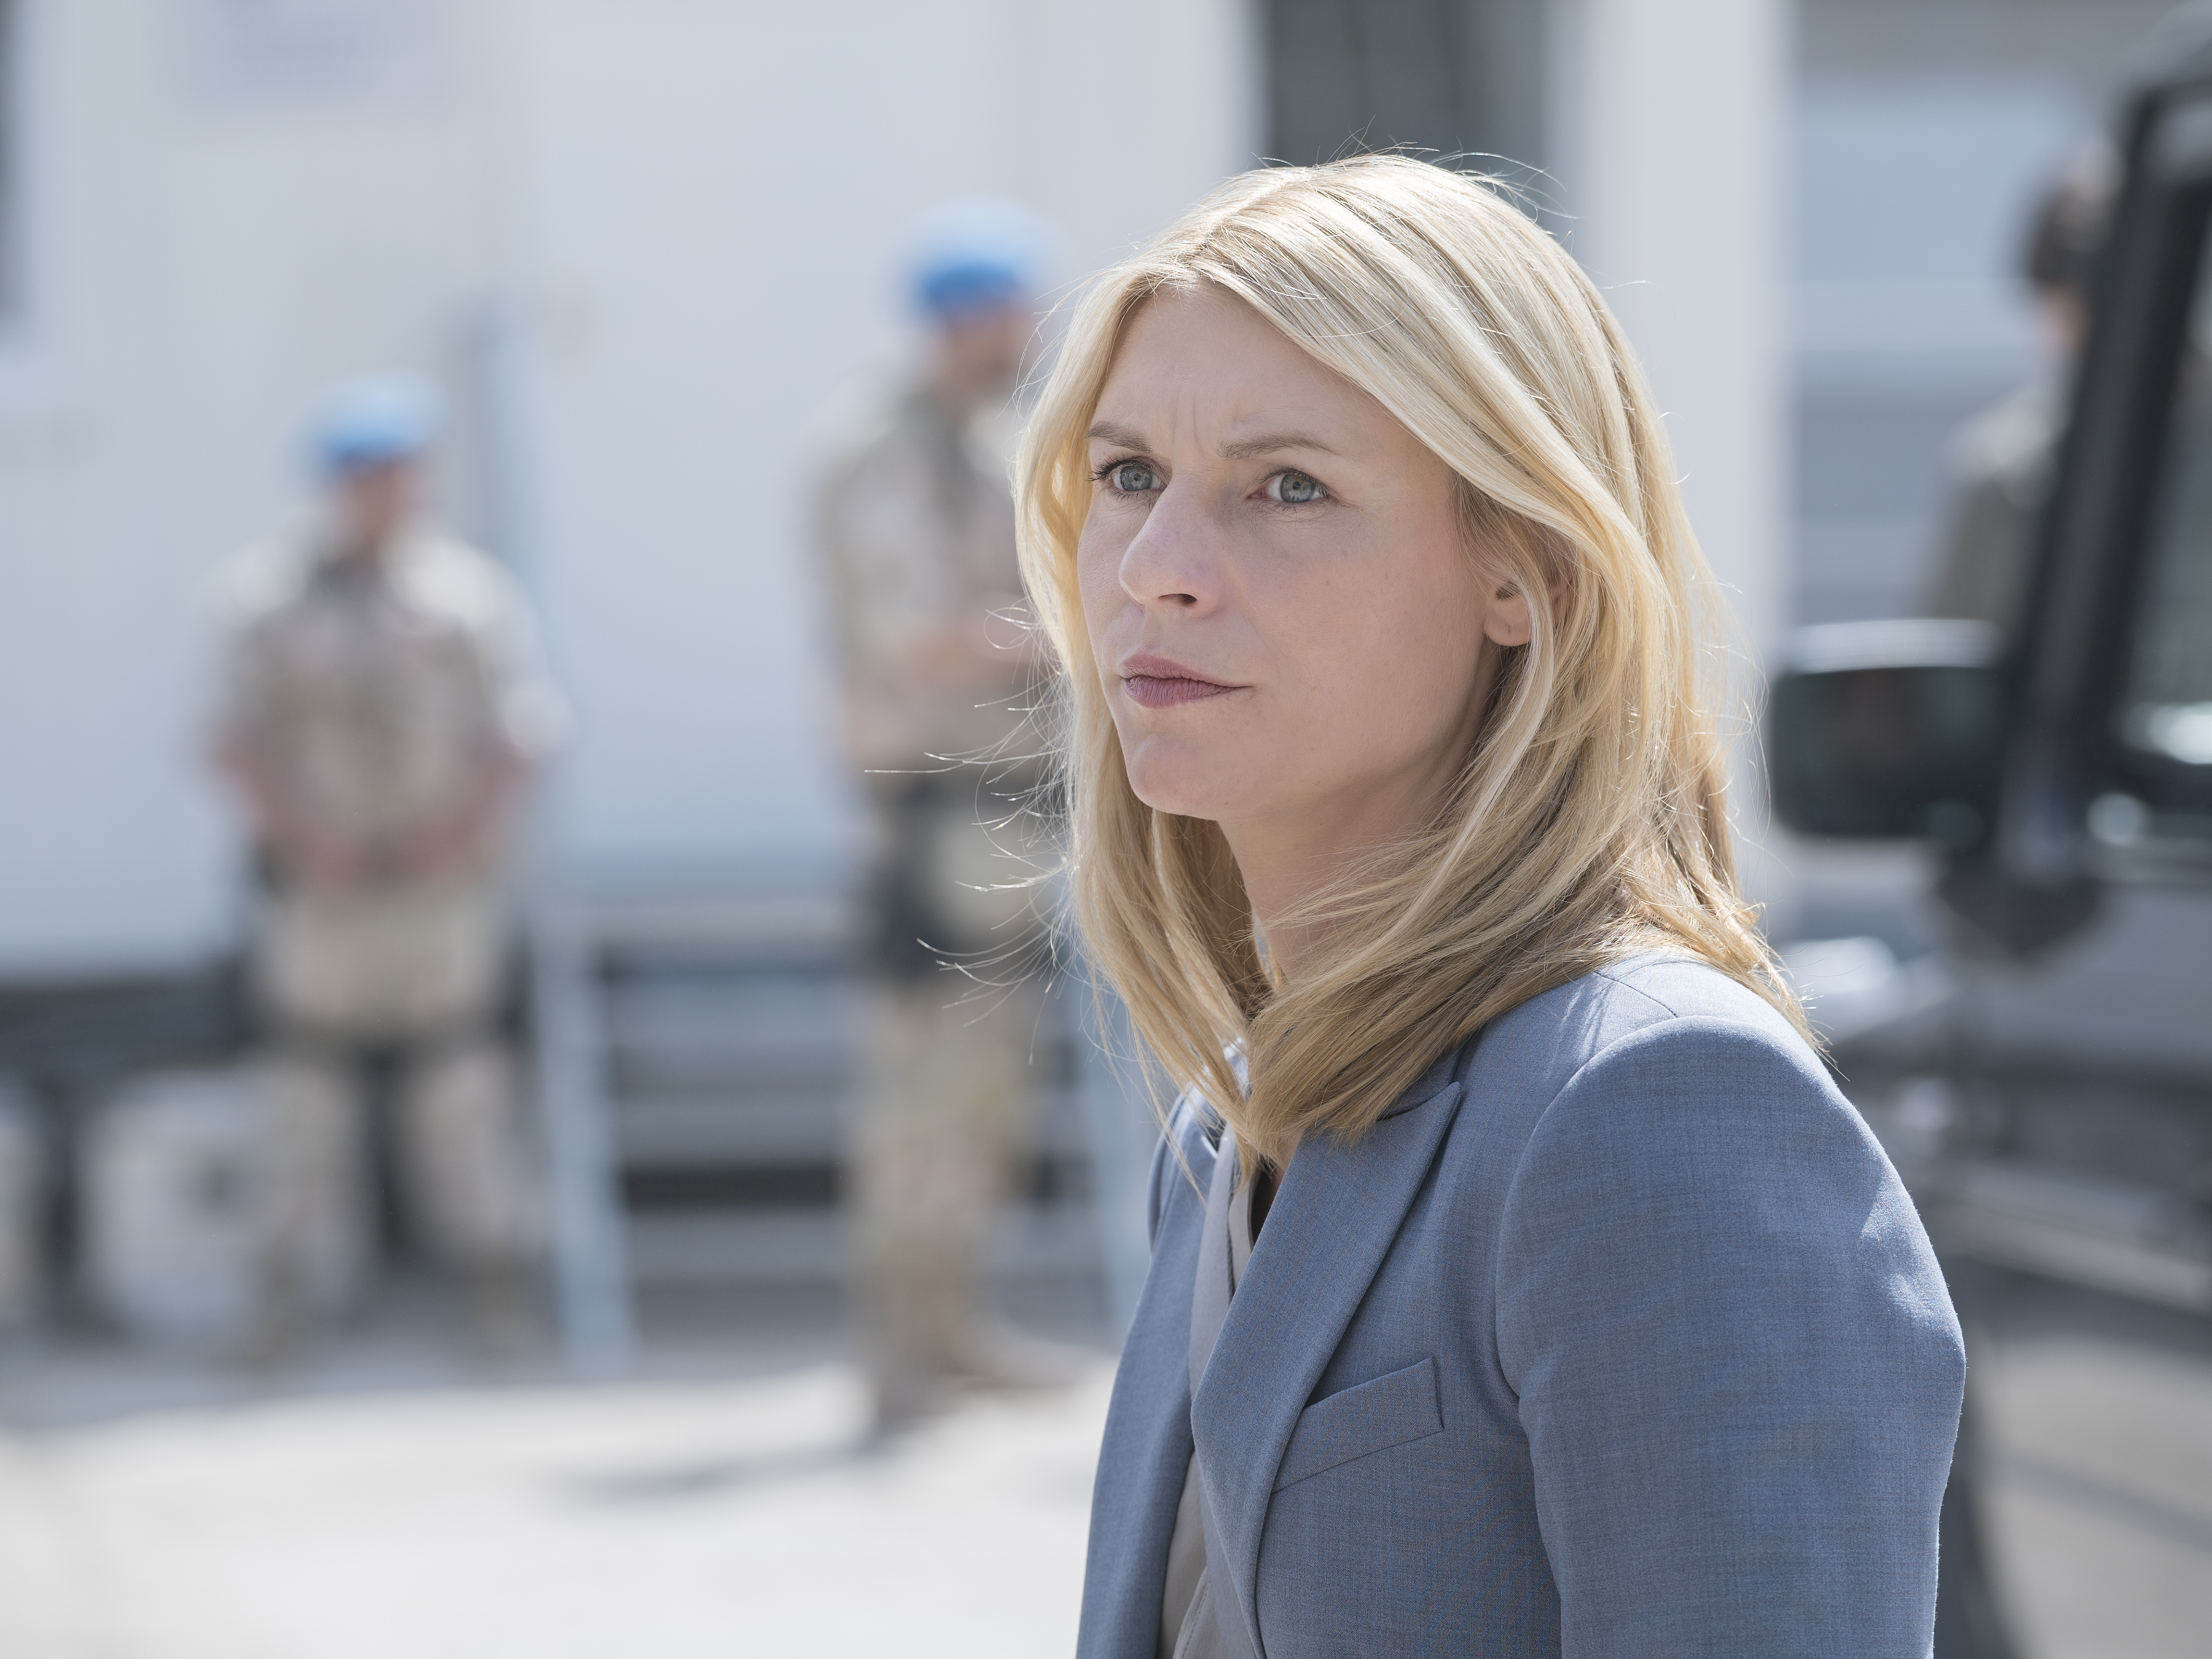 'The Tradition of Hospitality' - Claire Danes as Carrie Mathison